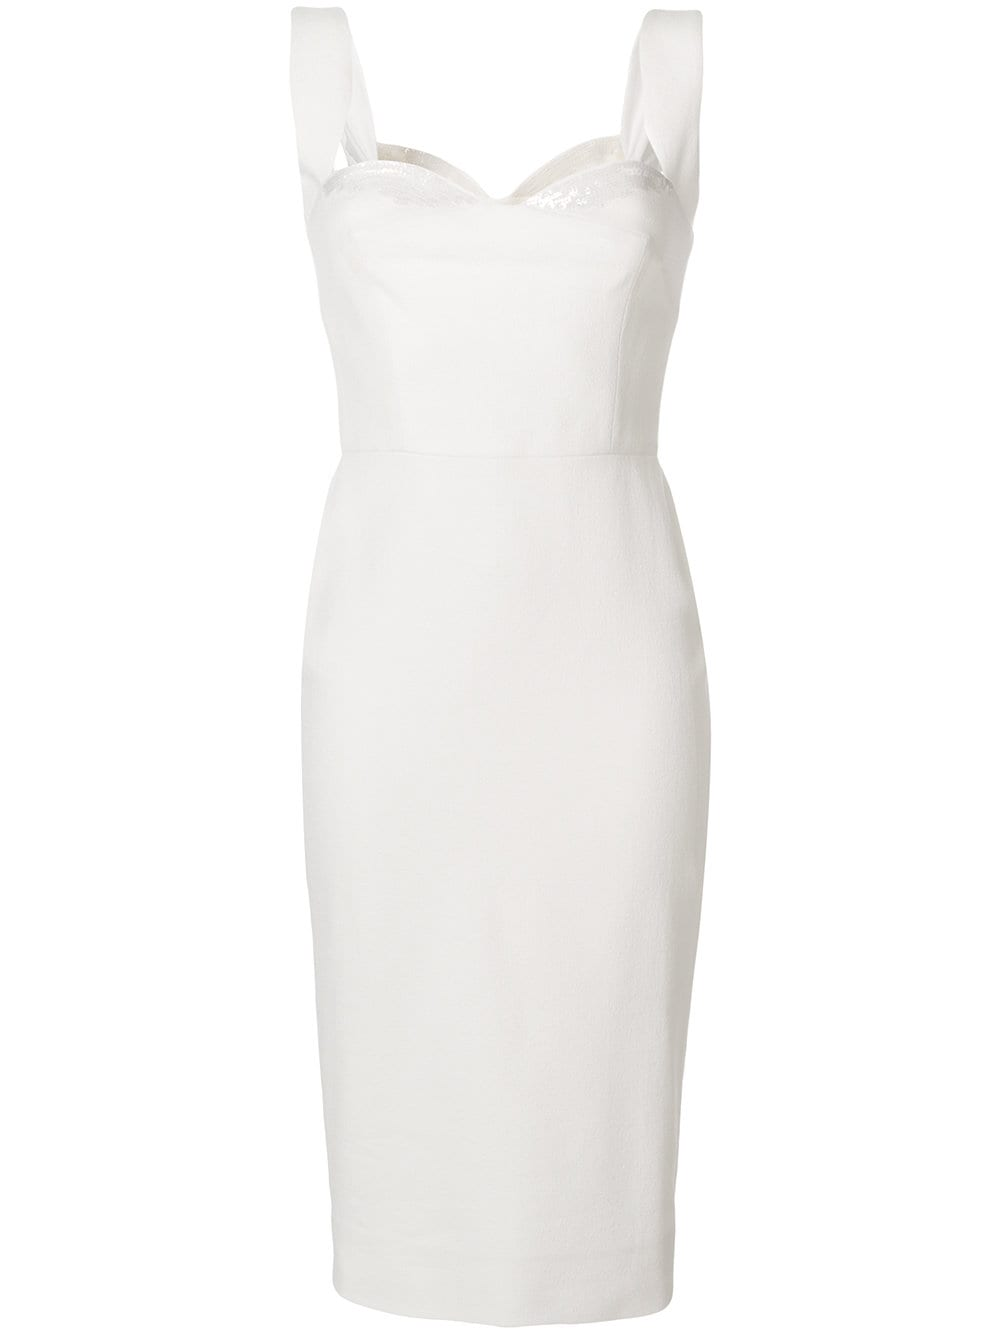 VICTORIA BECKHAM Embellished Signature Cream Dress